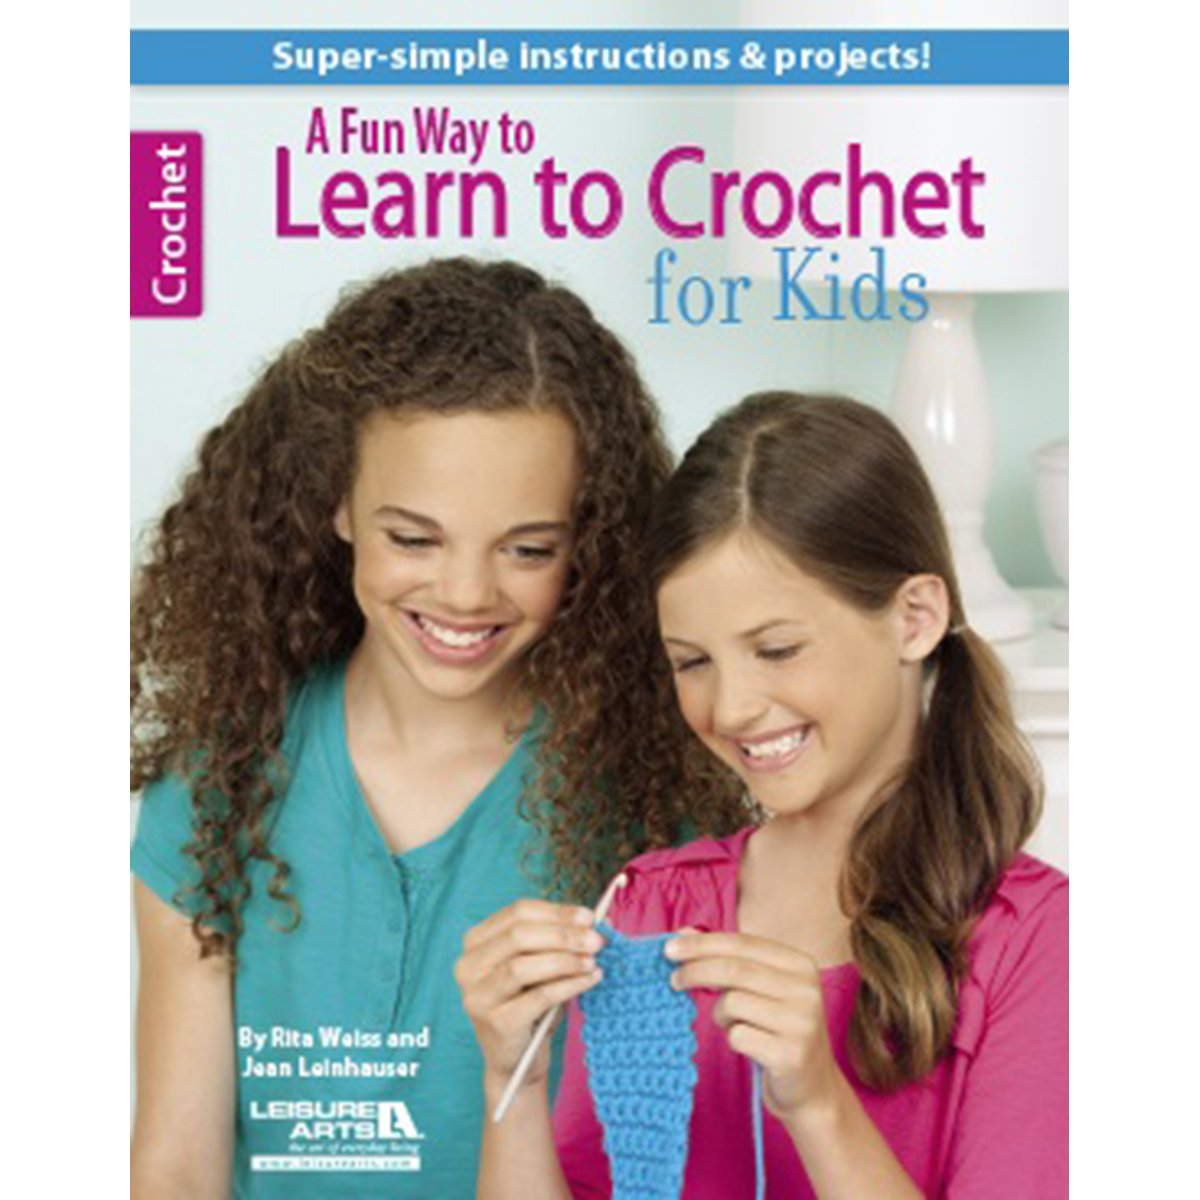 Leisure Arts Leisure Arts Books, A Fun Way to Learn Crochet for Kids LA-15969